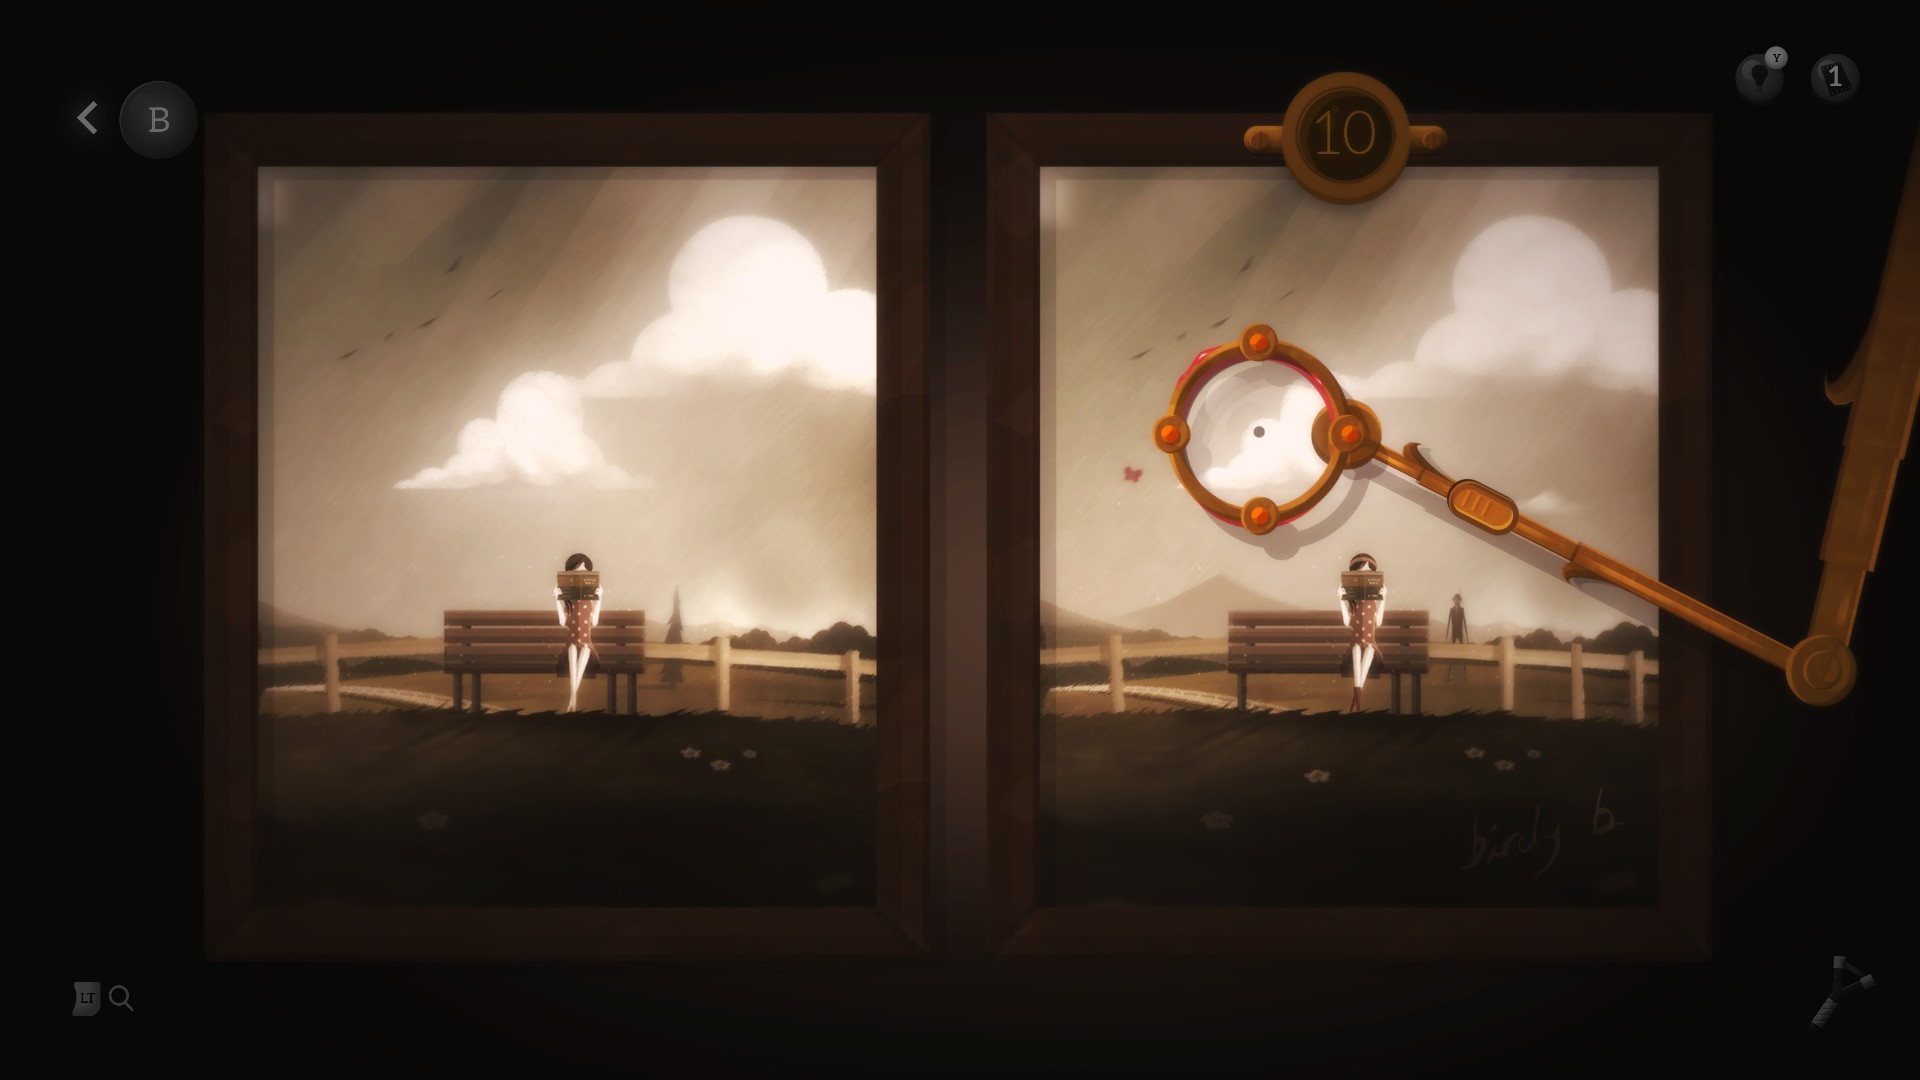 Pinstripe, Armor Games